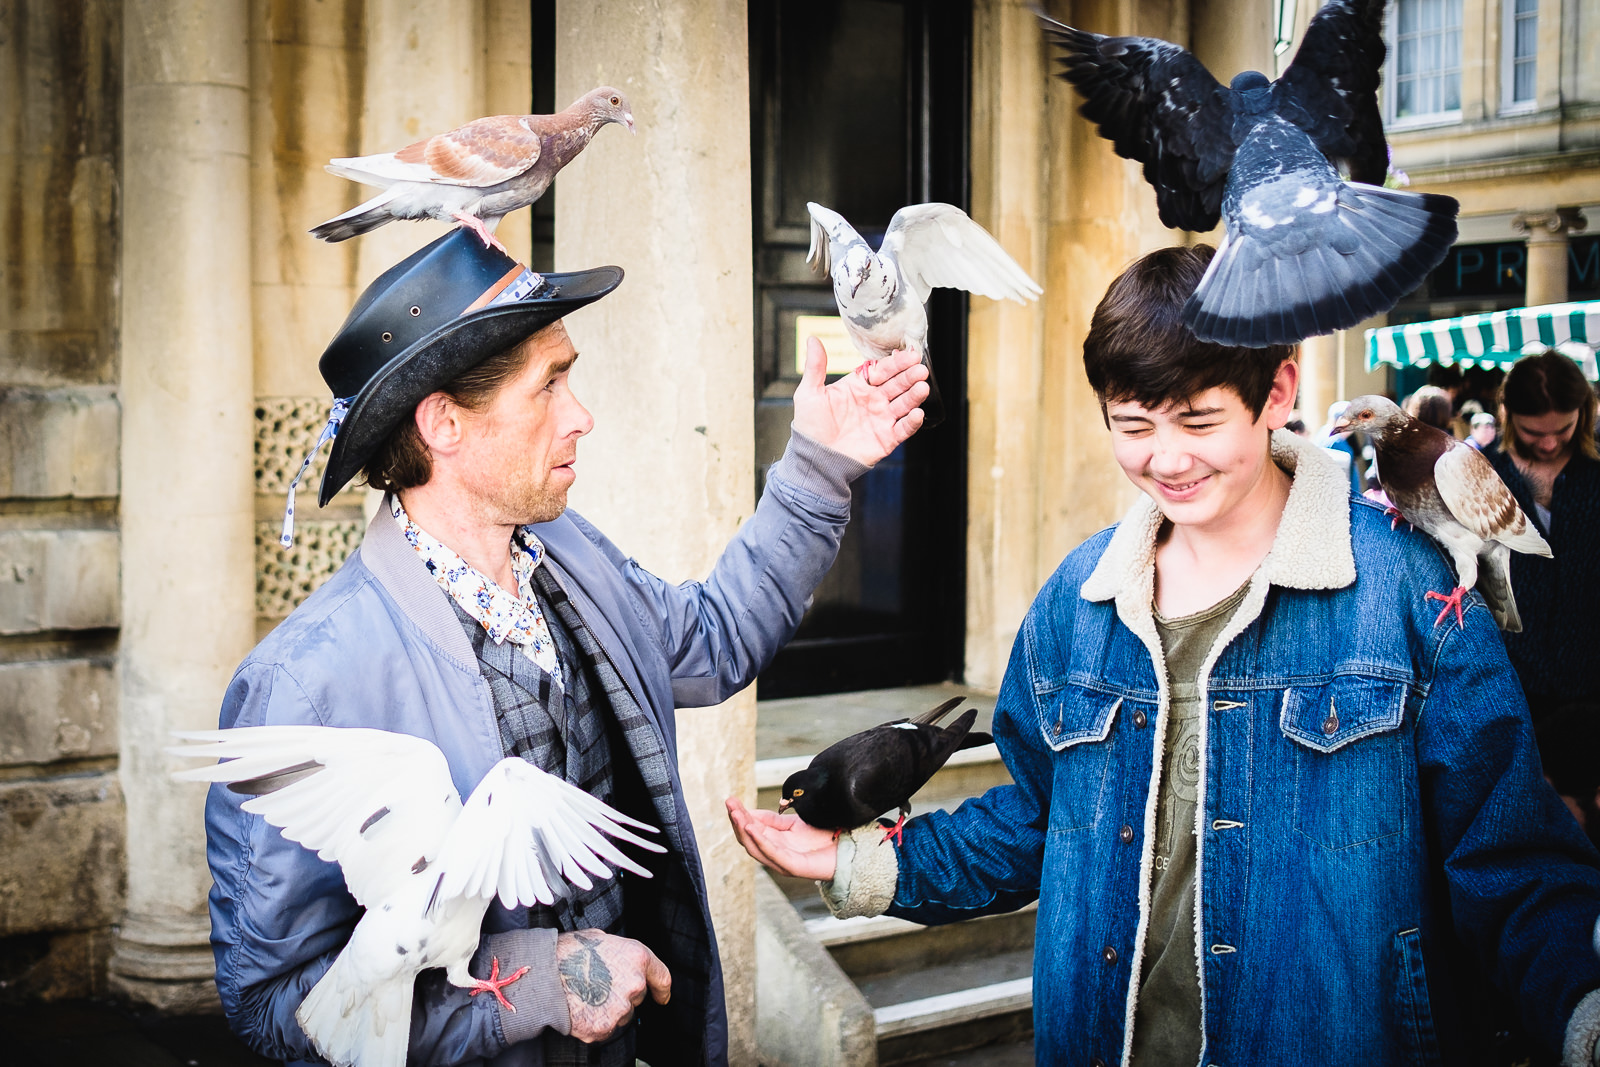 Street entertainer and teenager feeding the pigeons in Bath